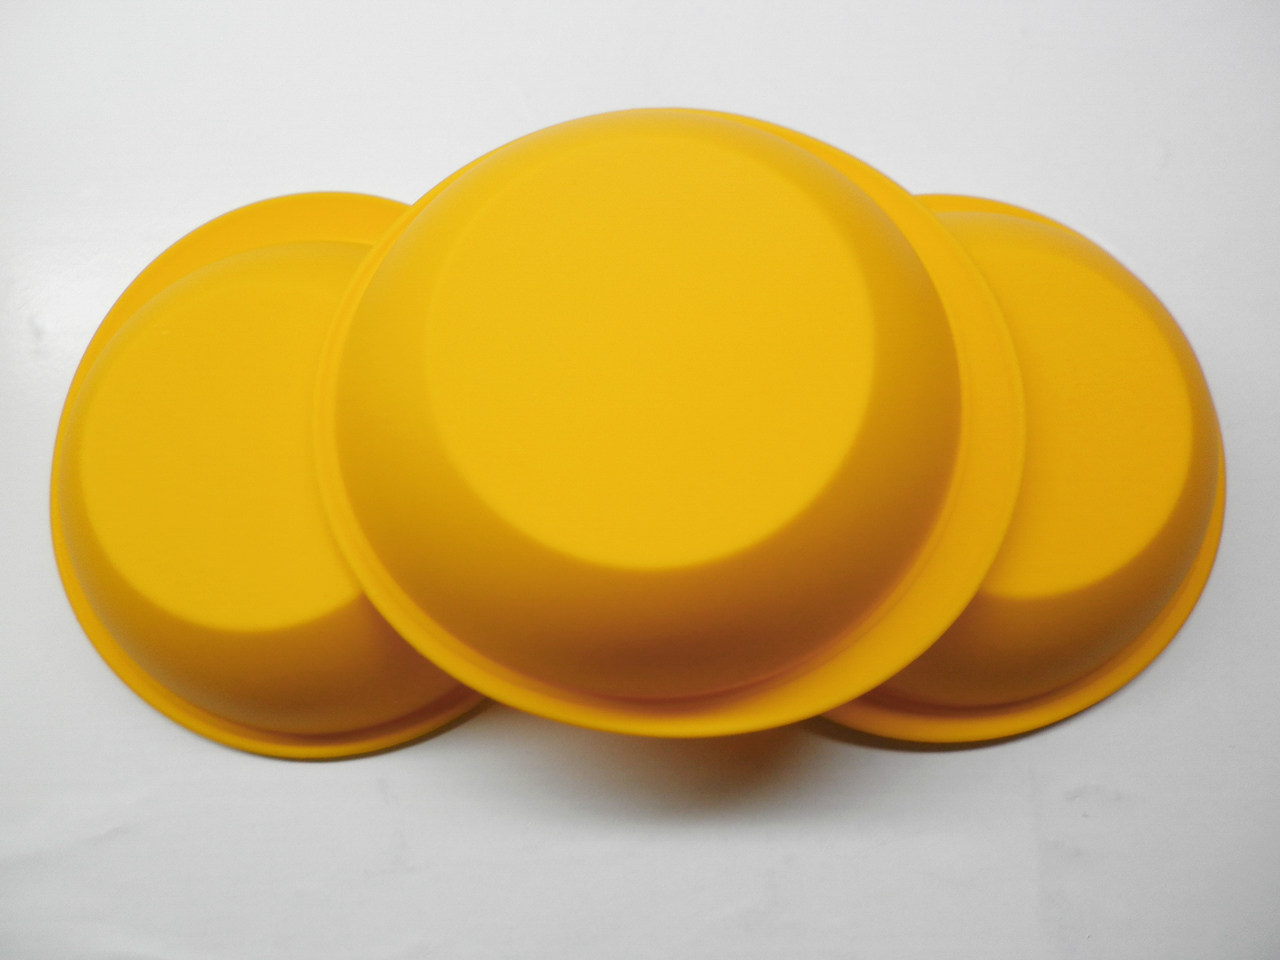 http://www.refinehksilicone.cn/data/images/product/20180418100222_713.jpg